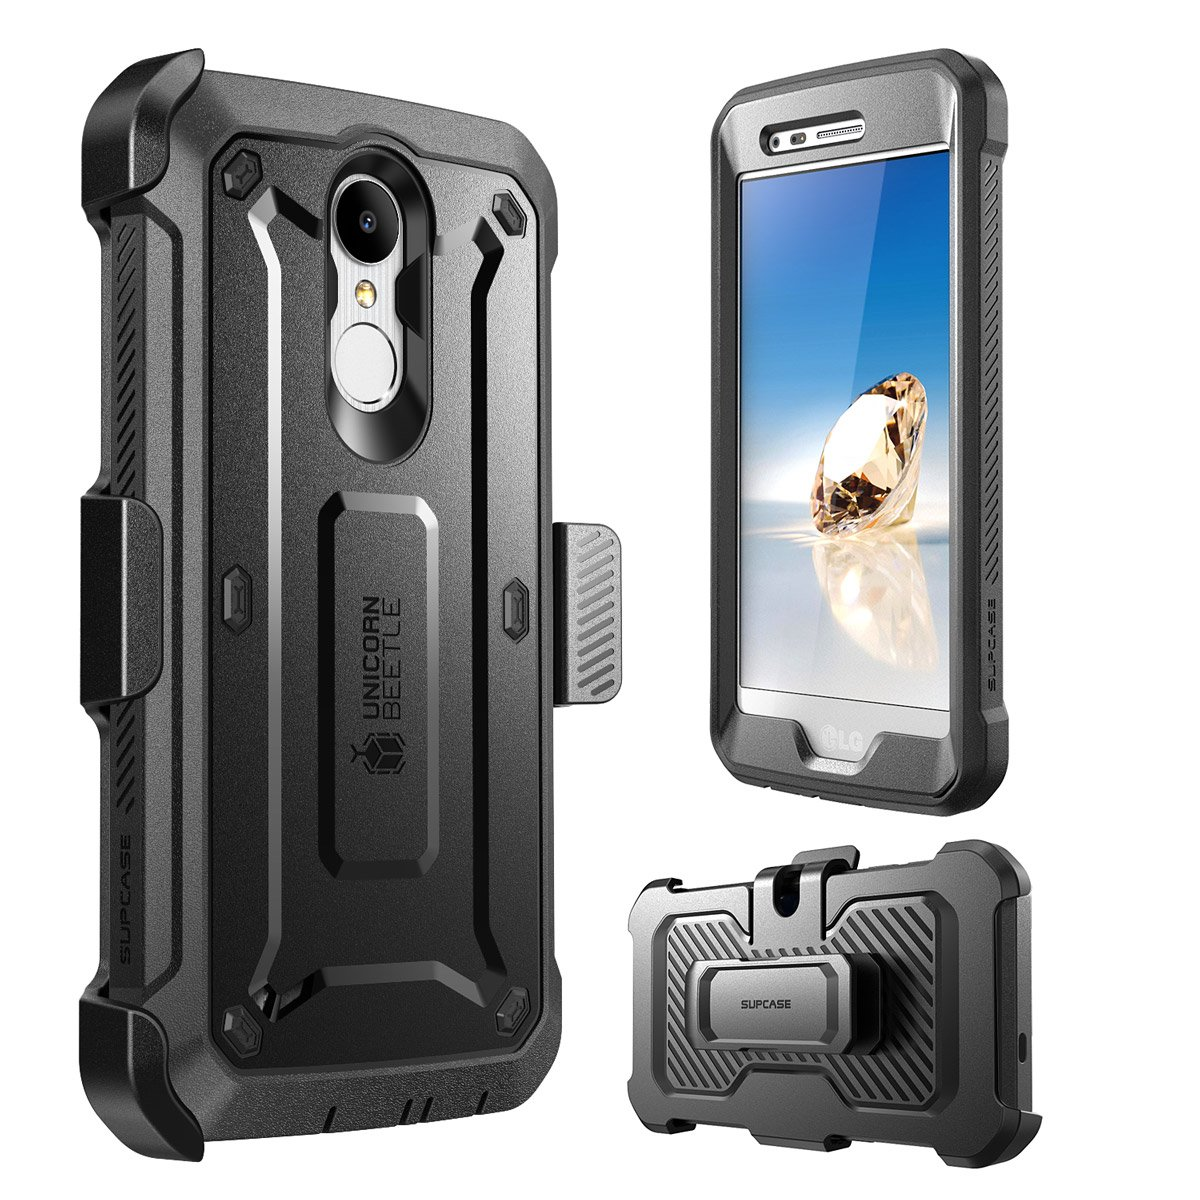 SupCase Unicorn Beetle Pro Case for LG Aristo 2 Plus/LG Aristo 2 / Tribute Dynasty/Fortune 2/ Rebel 3 LTE, with Built-in Screen Protector for LG ...